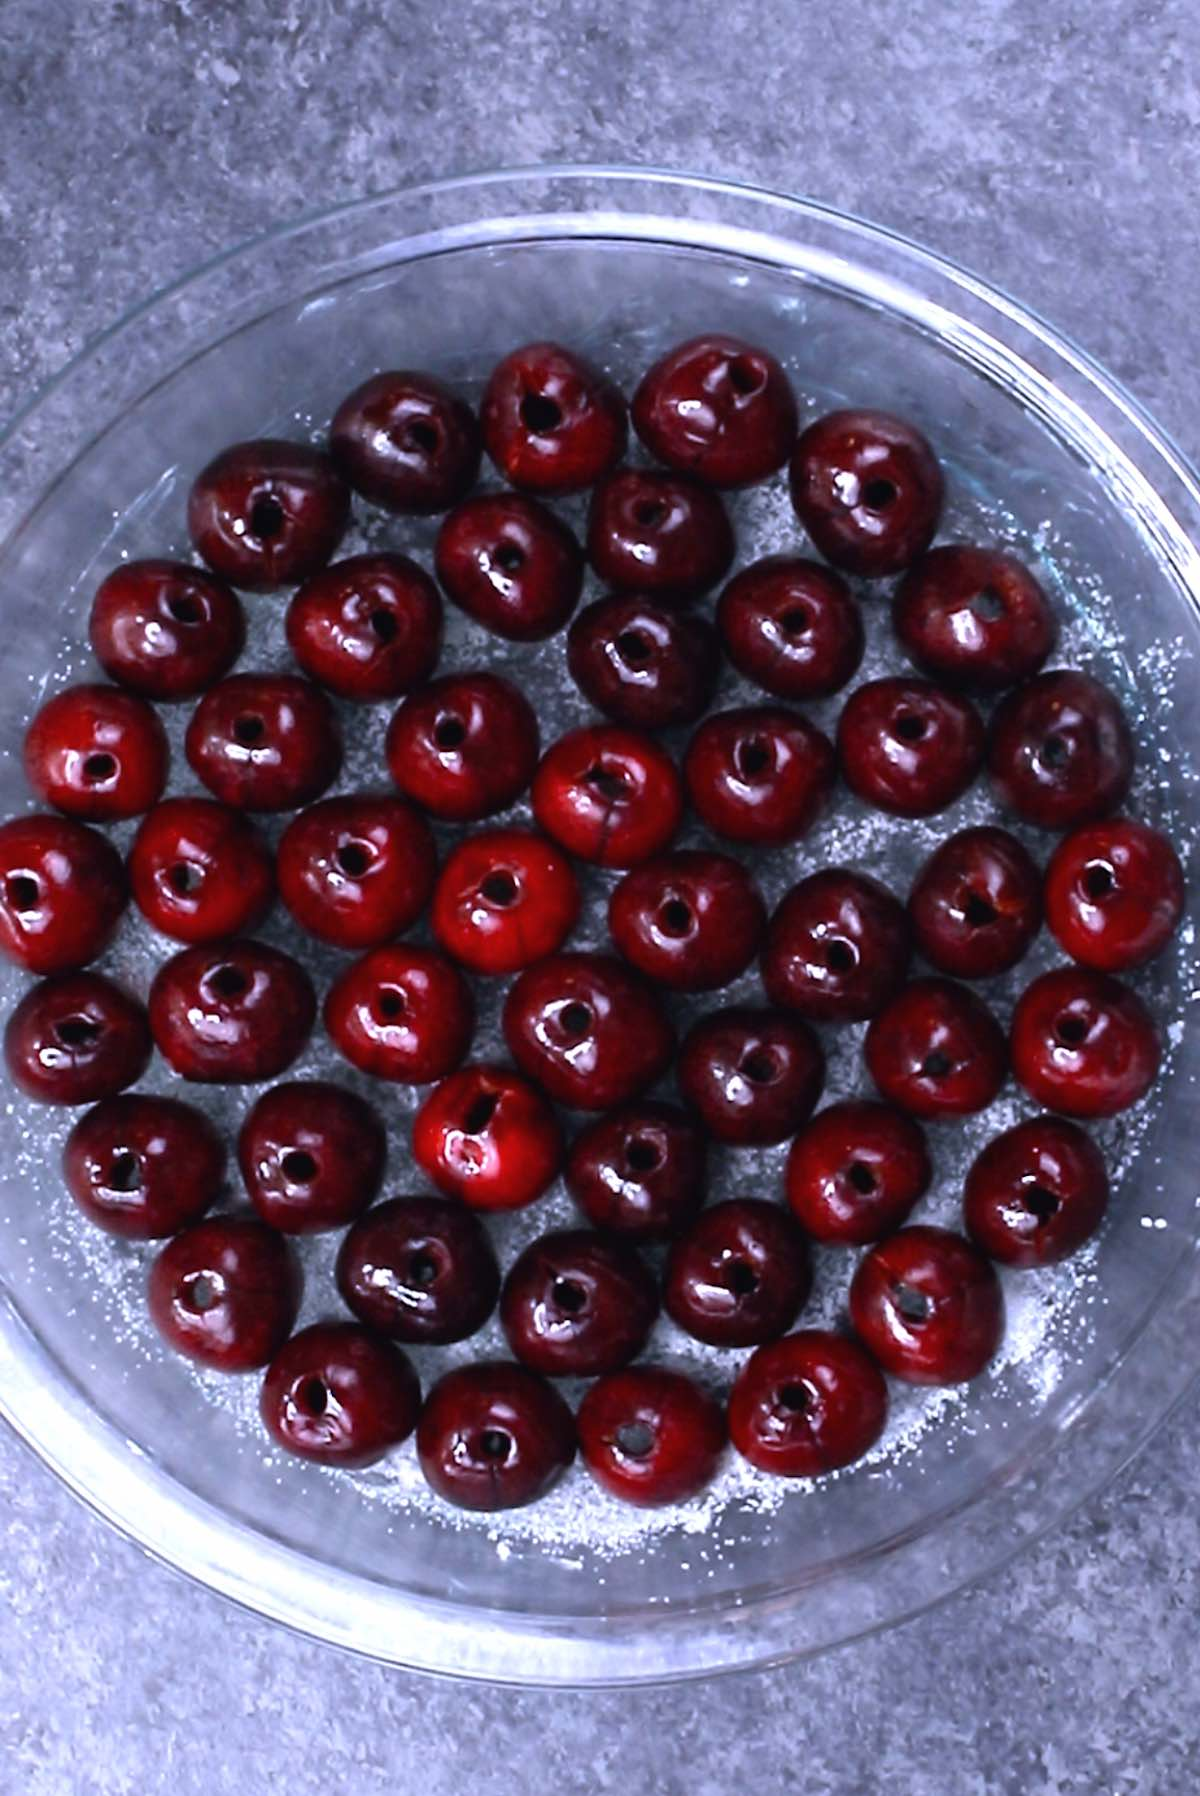 Overhead view of a greased pie plate filled with a single layer of pitted cherries when making clafoutis